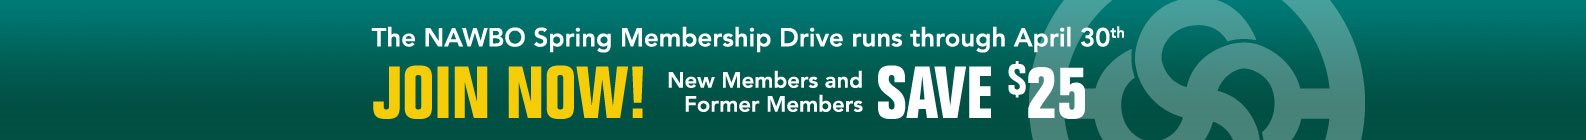 Join Now NAWBO Membership Drive